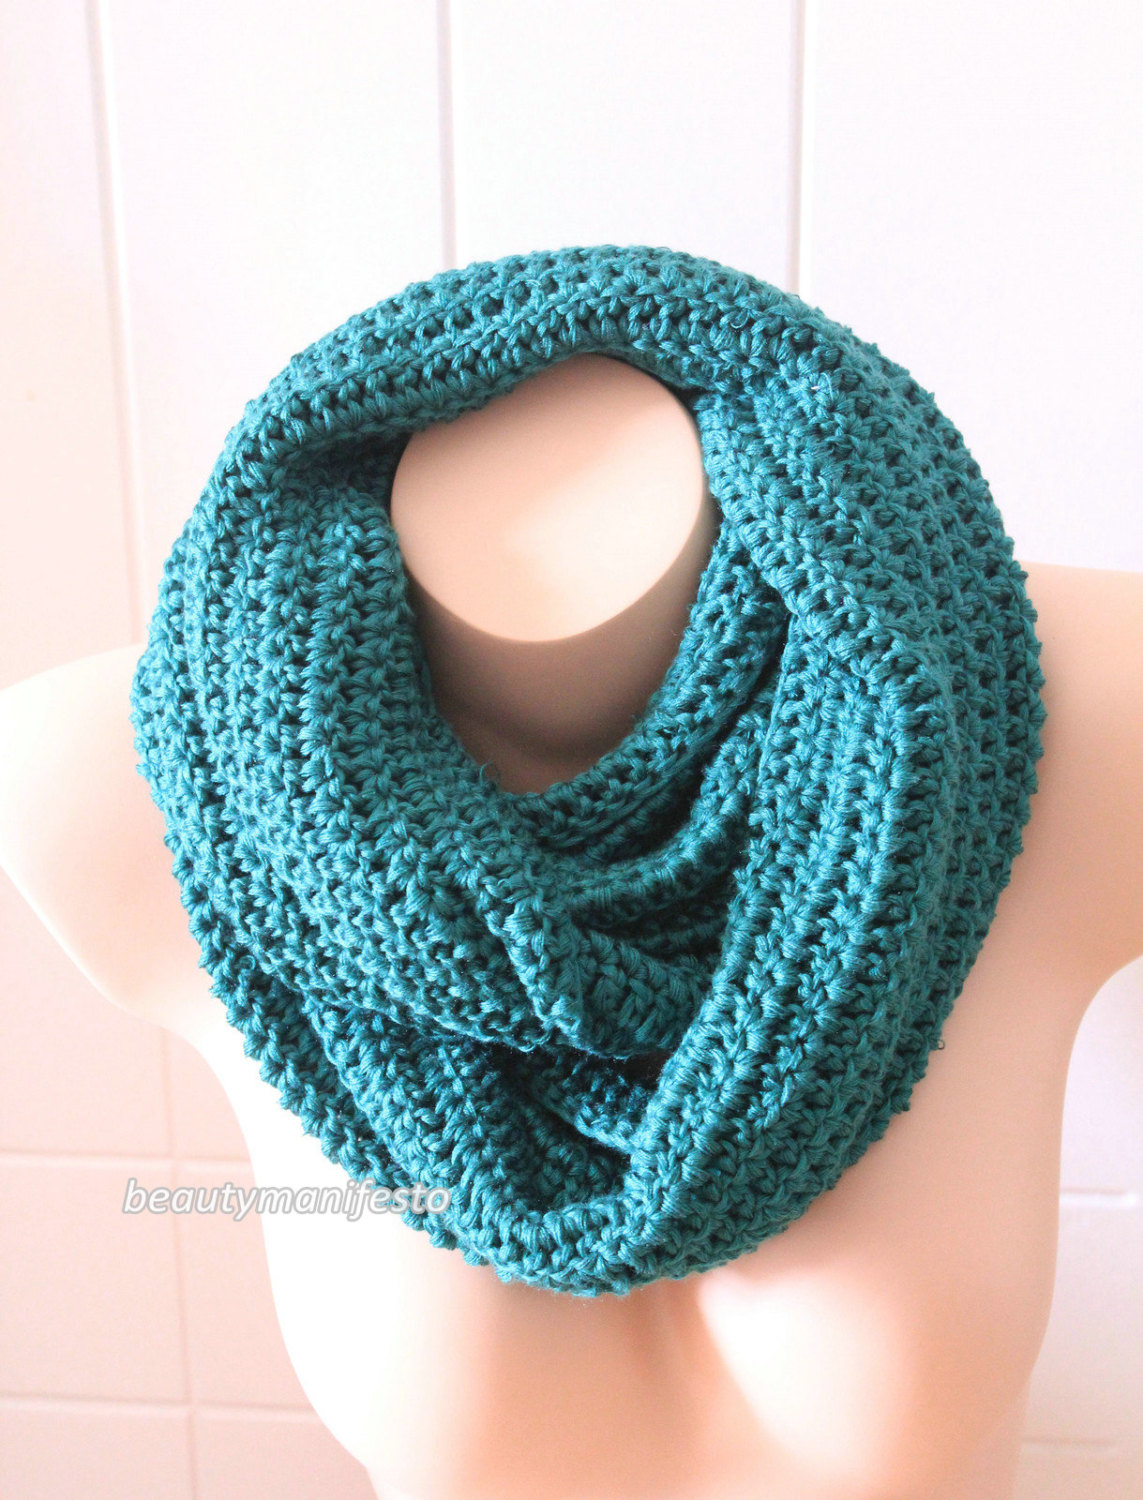 Oversized knit scarf,oversized chunky infinity scarf in emerald green color,crochet infinity scarves,custom orders welcome,free shipping